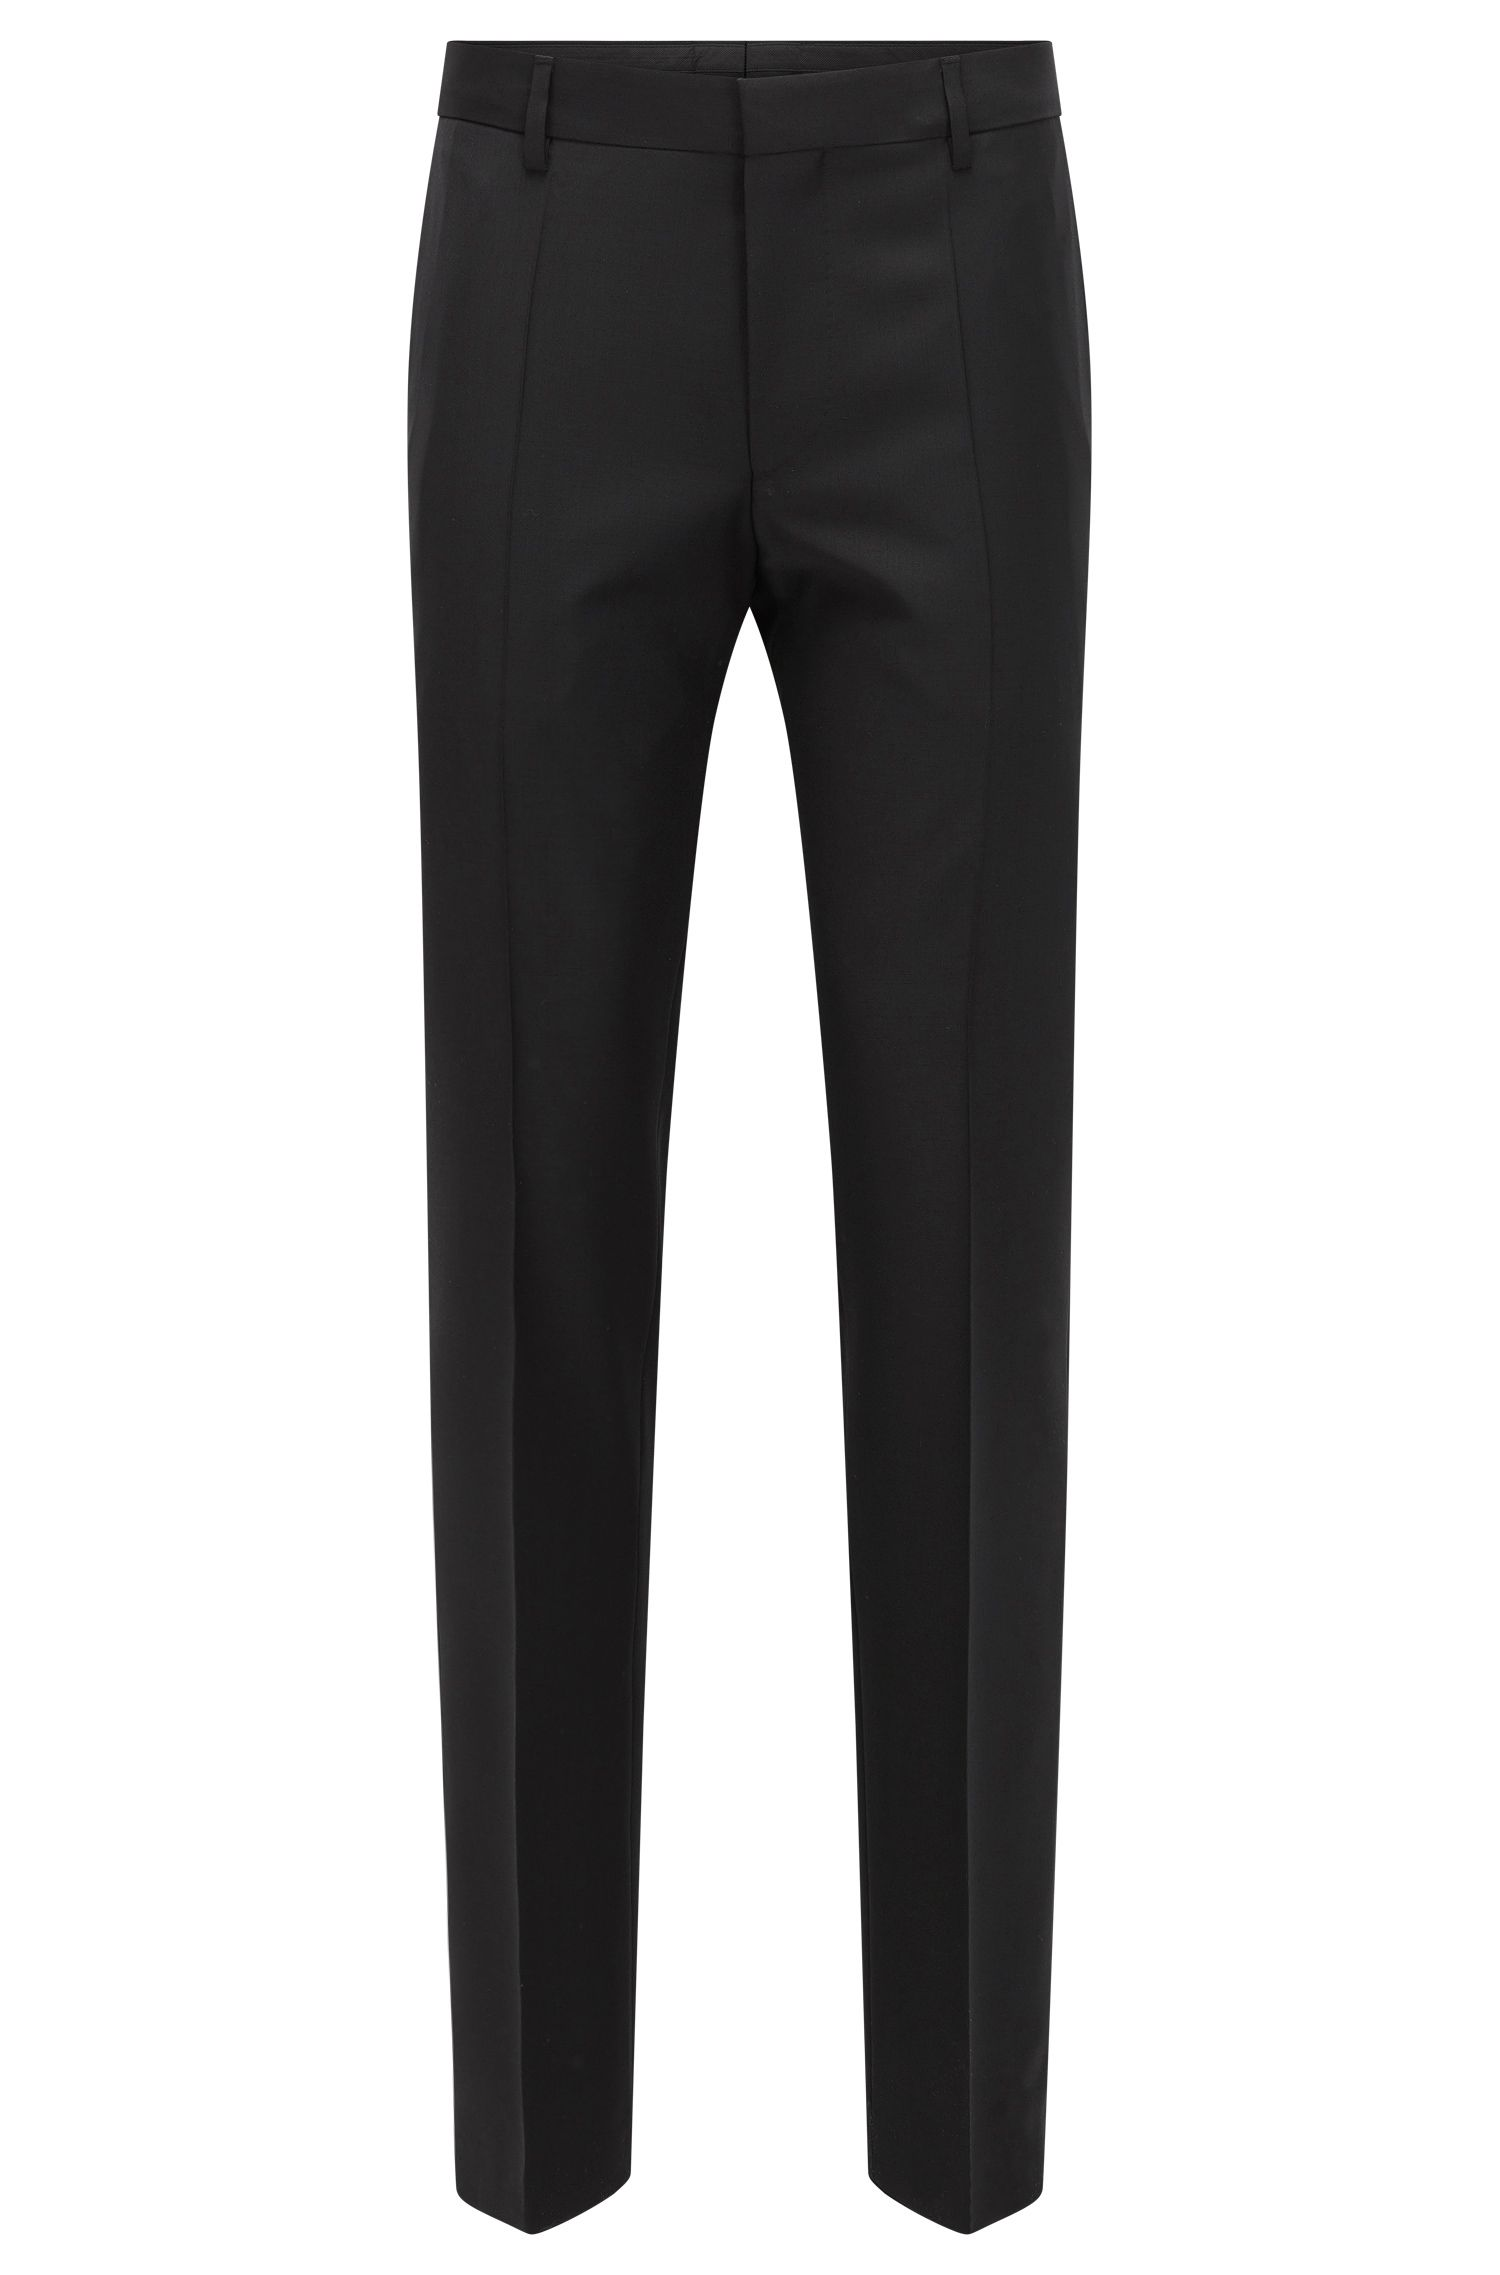 Virgin Wool Cashmere Dress Pants, Slim Fit | Benso